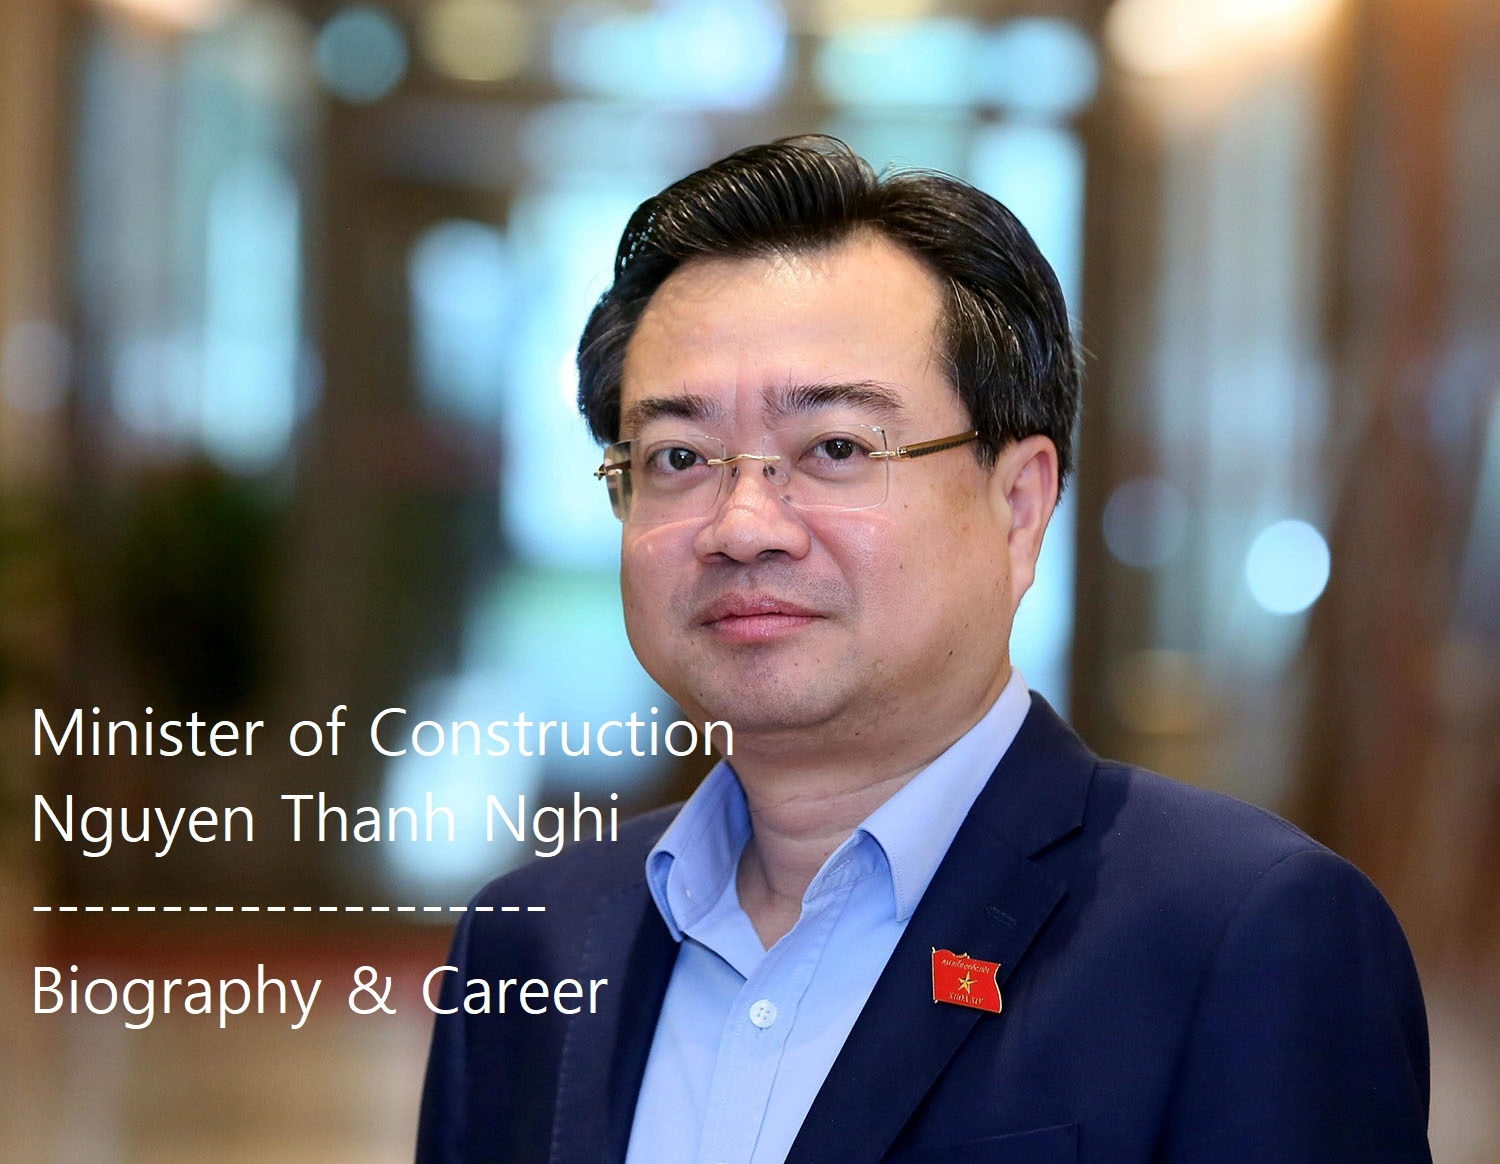 Vietnam Minister of Construction Nguyen Thanh Nghi: Biography, Positions and Working History